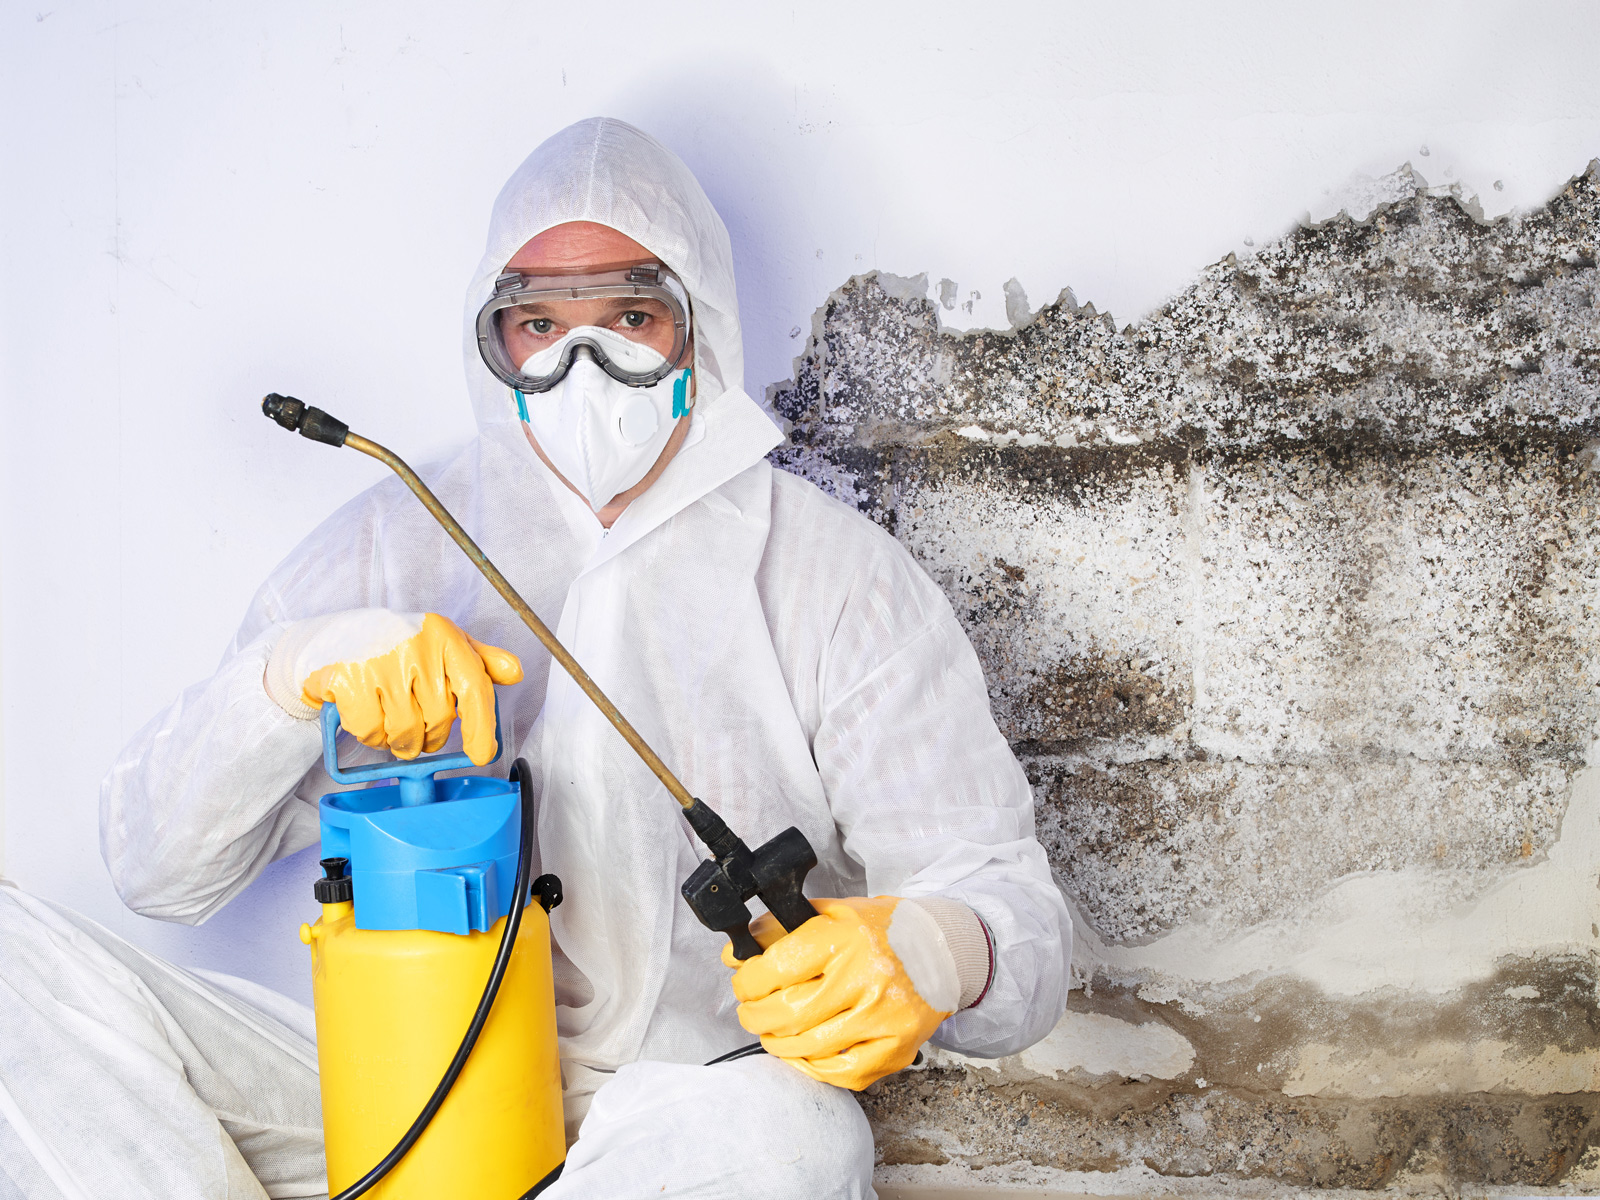 mould-remediation-cleanup-adobestock_71268057-1600px.jpg